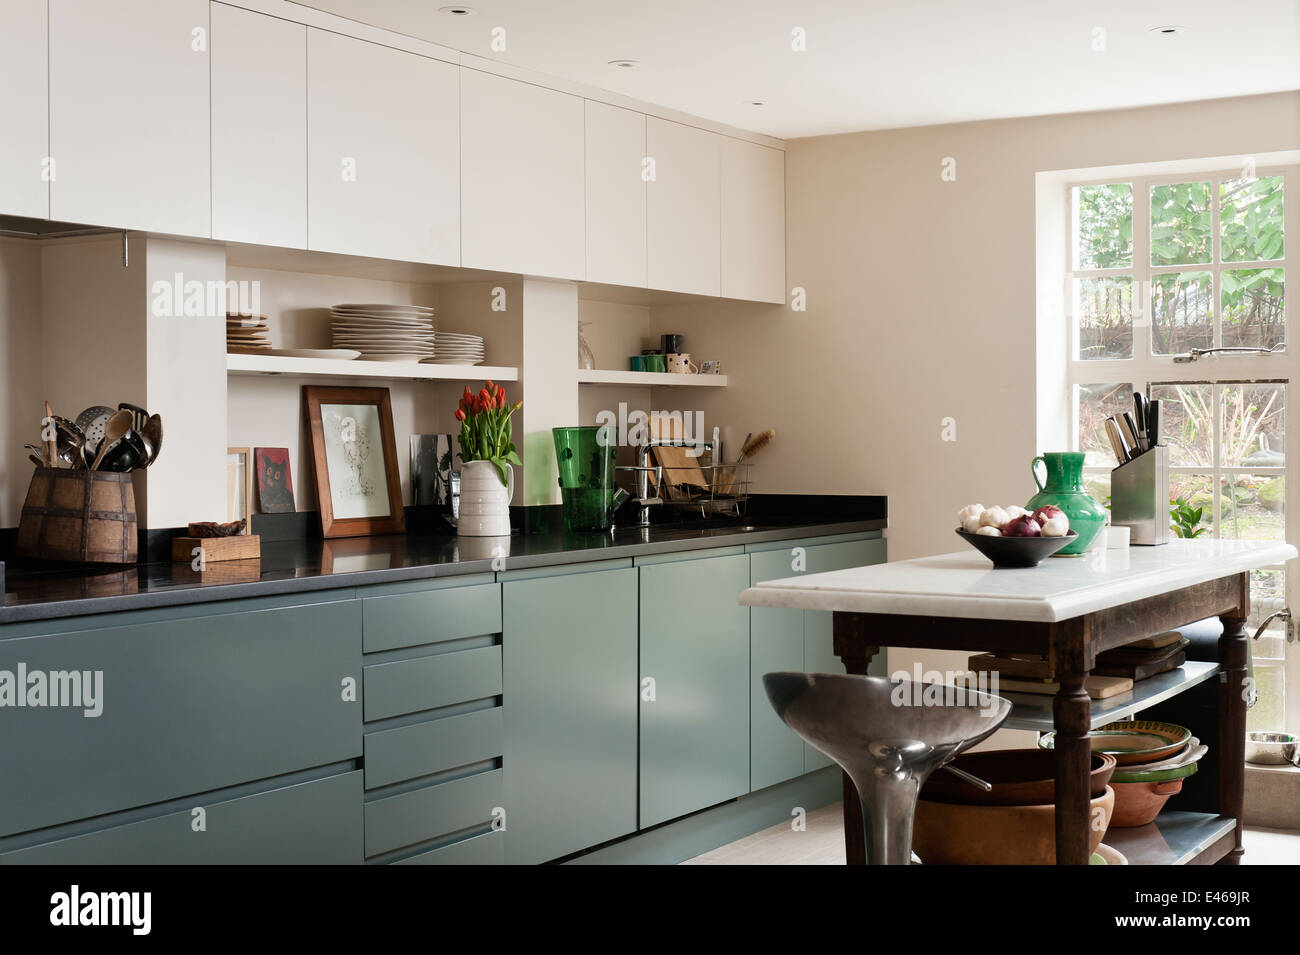 London home, kitchen with island and bar stool - Stock Image